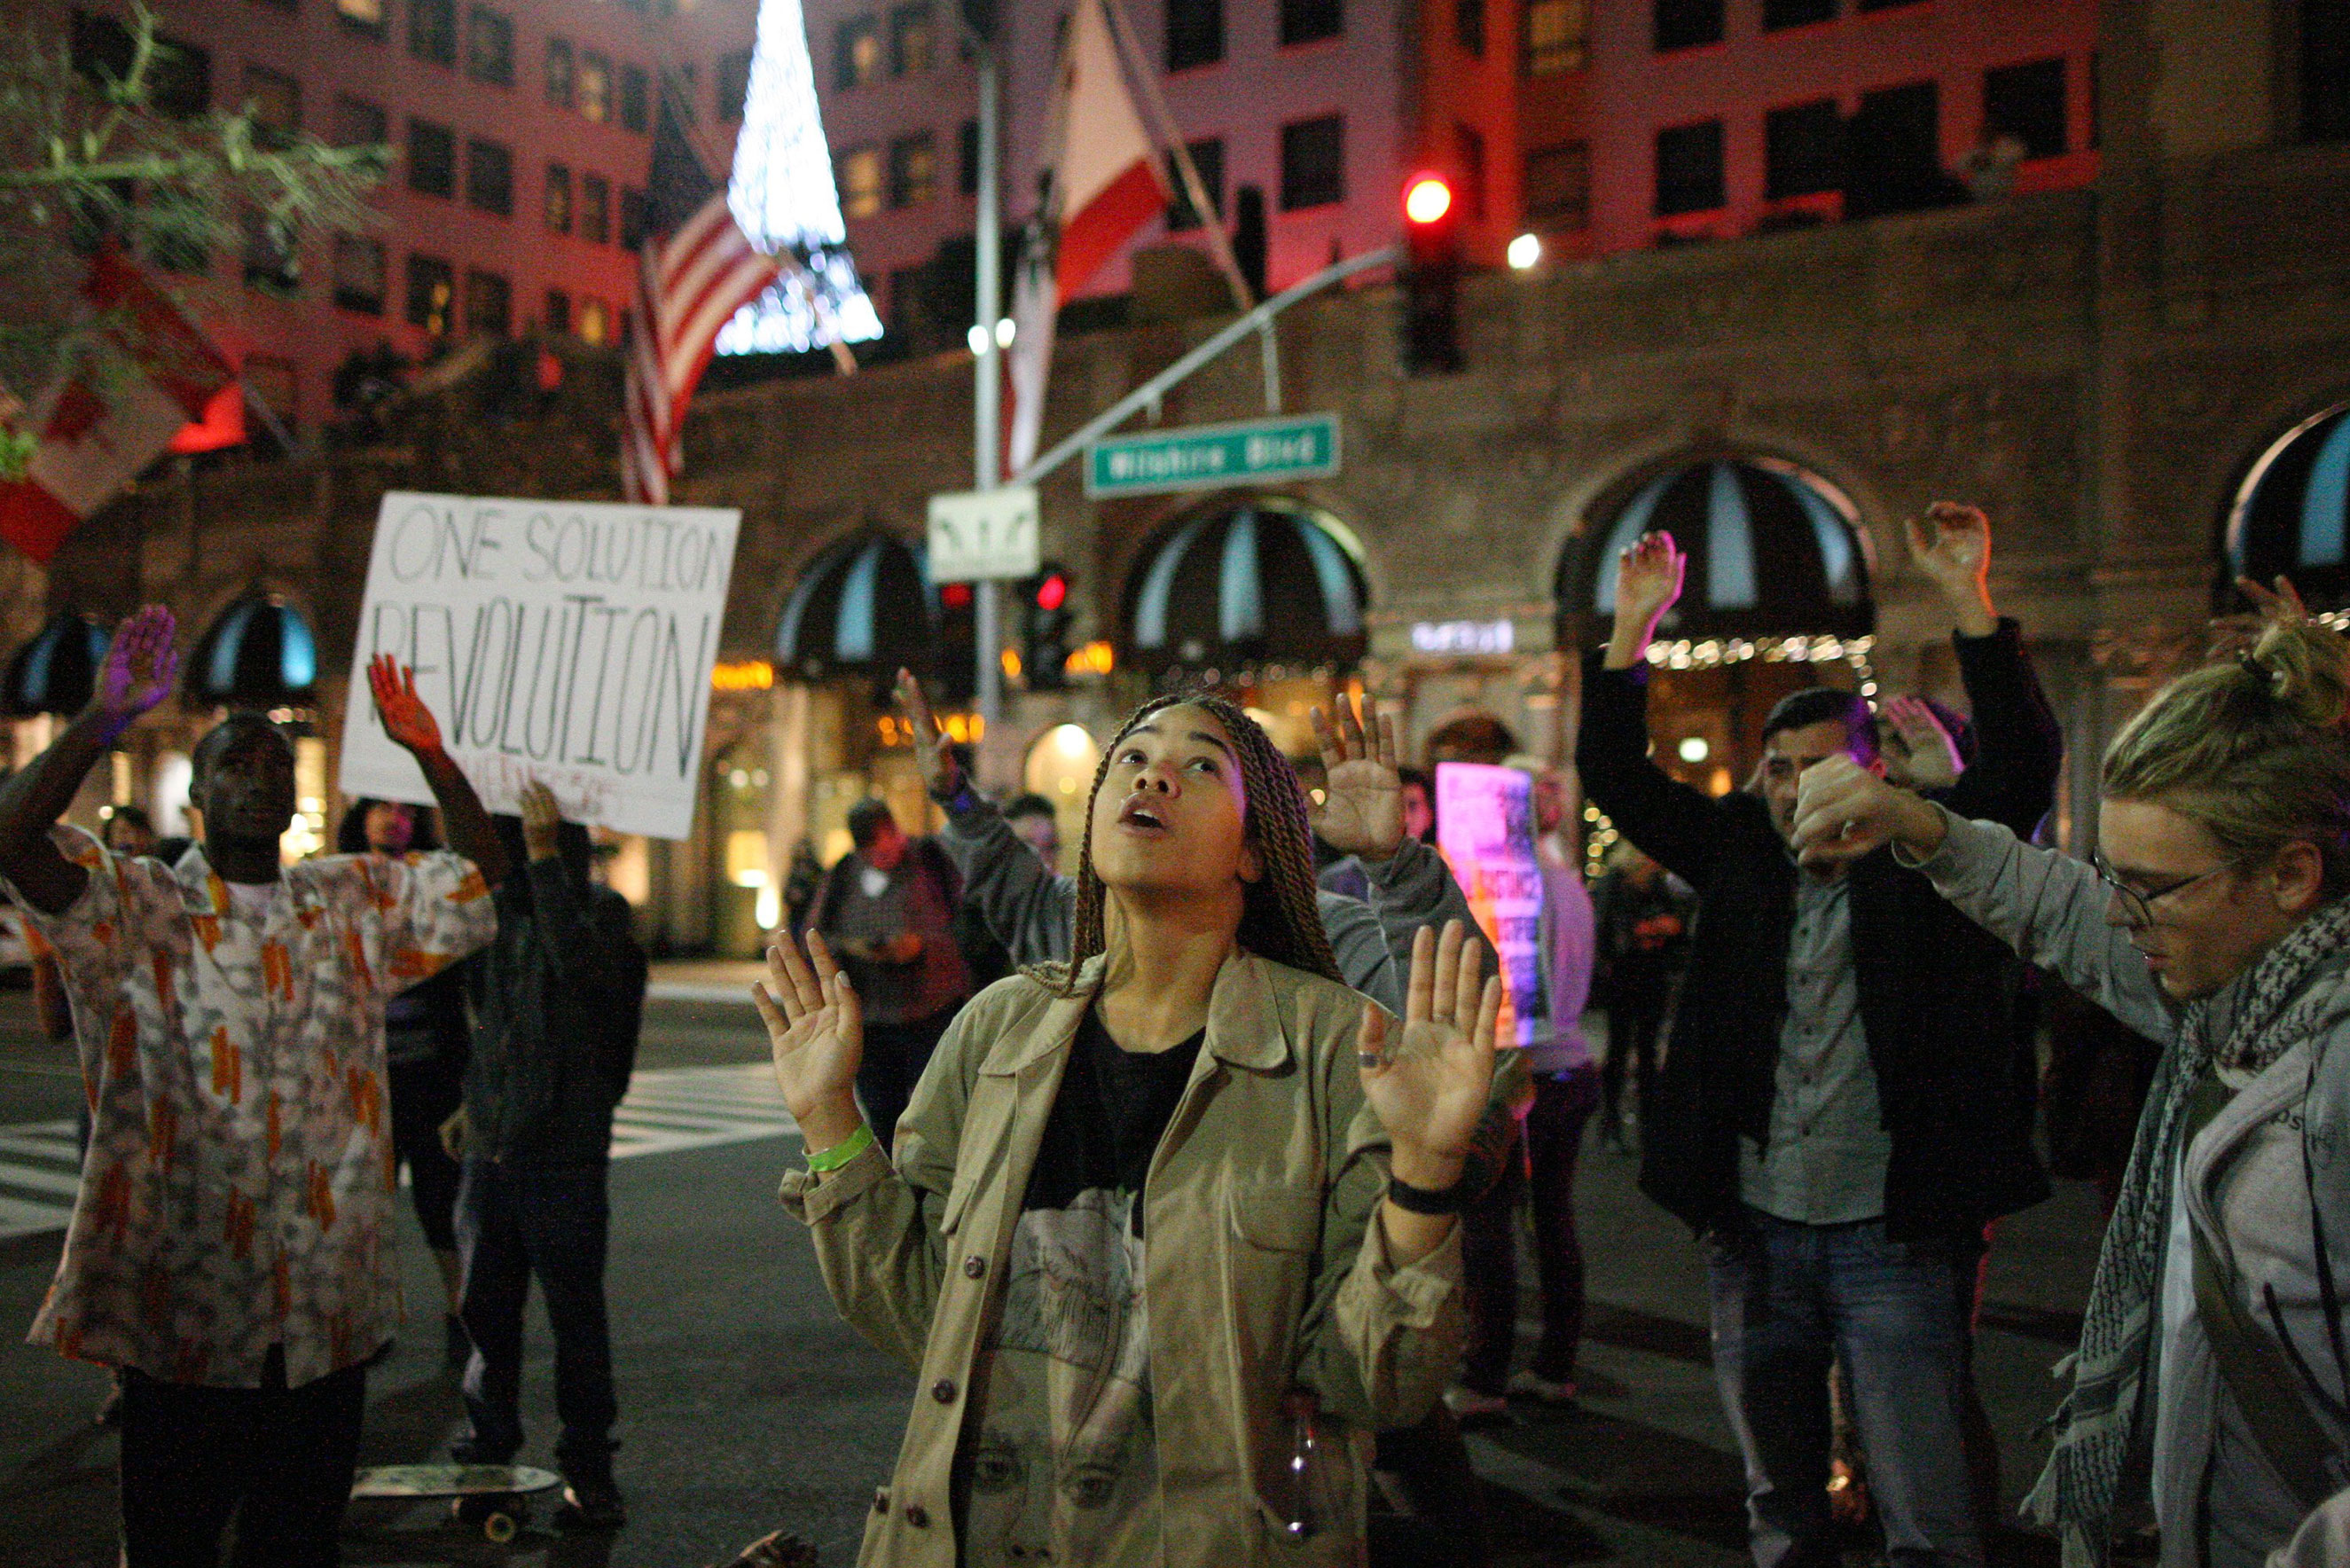 Protesters block the intersection of Wilshire Boulevard and Rodeo Dr. in Beverly Hills, Calif., on Nov. 24, 2014.